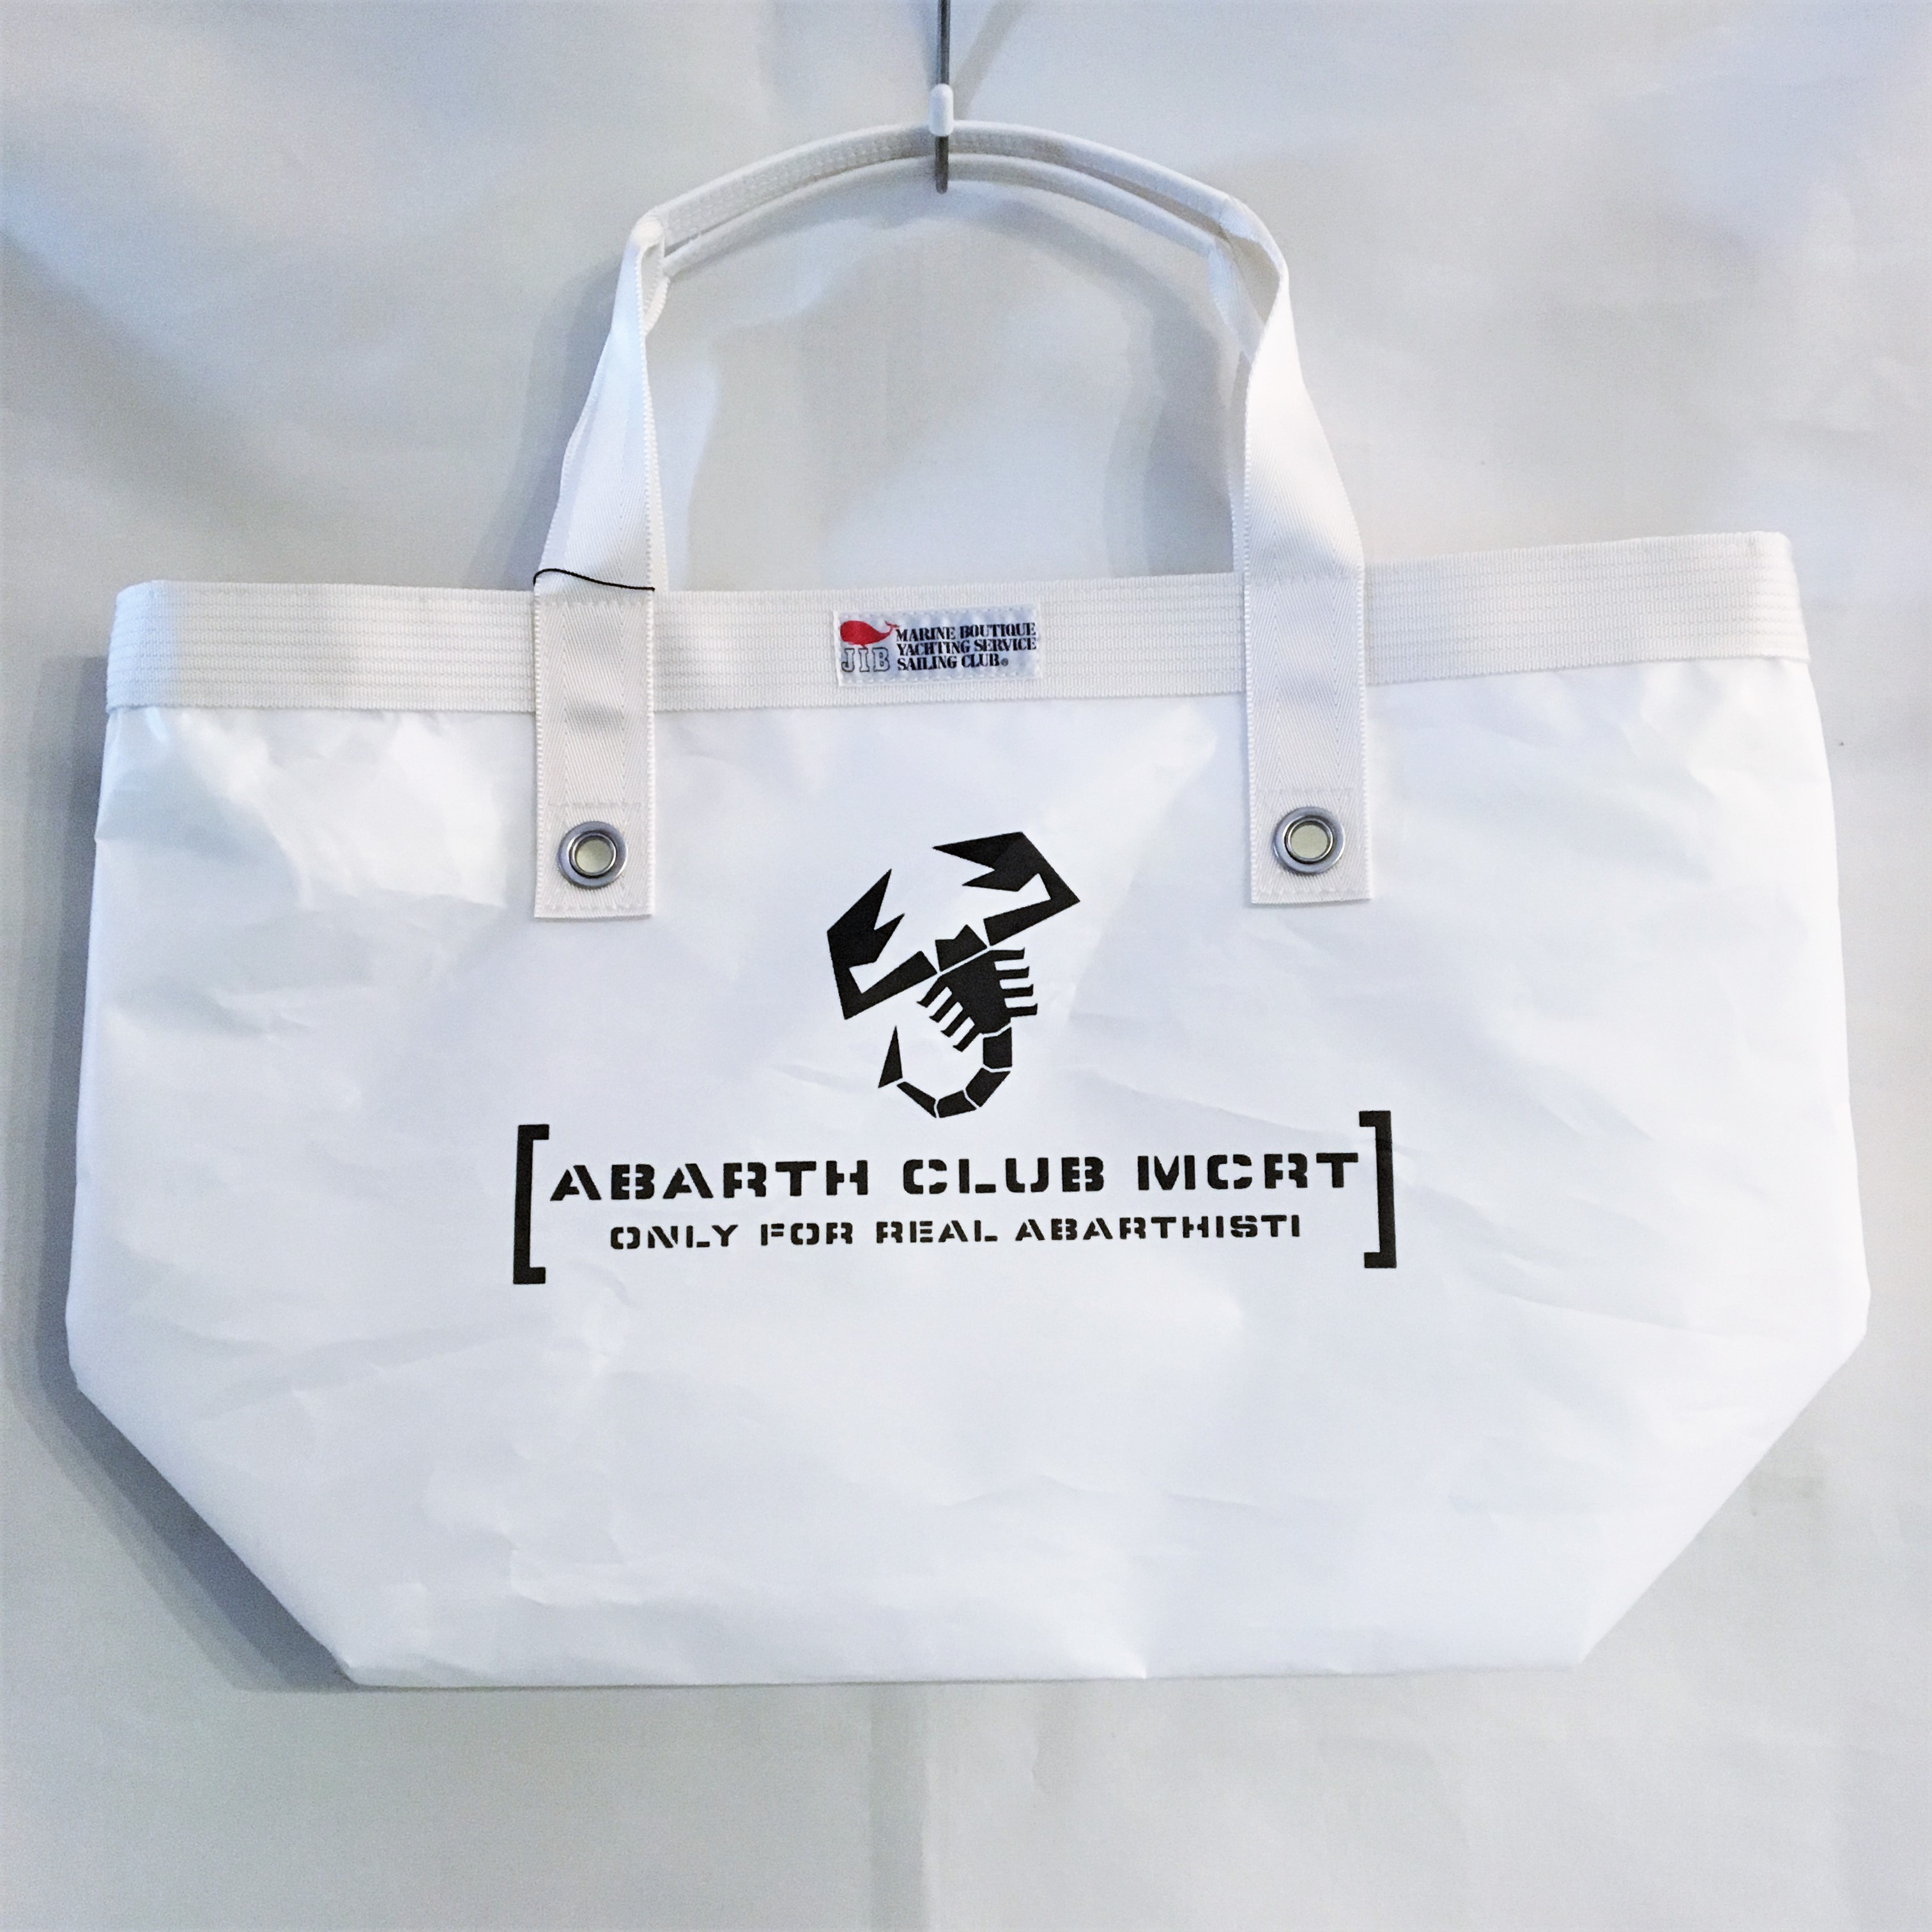 【ABARTHCLUB MCRT】 Open Tote Inner Zip TFM73 【White】【少数入荷】  【会員様限定販売】 【税込価格】